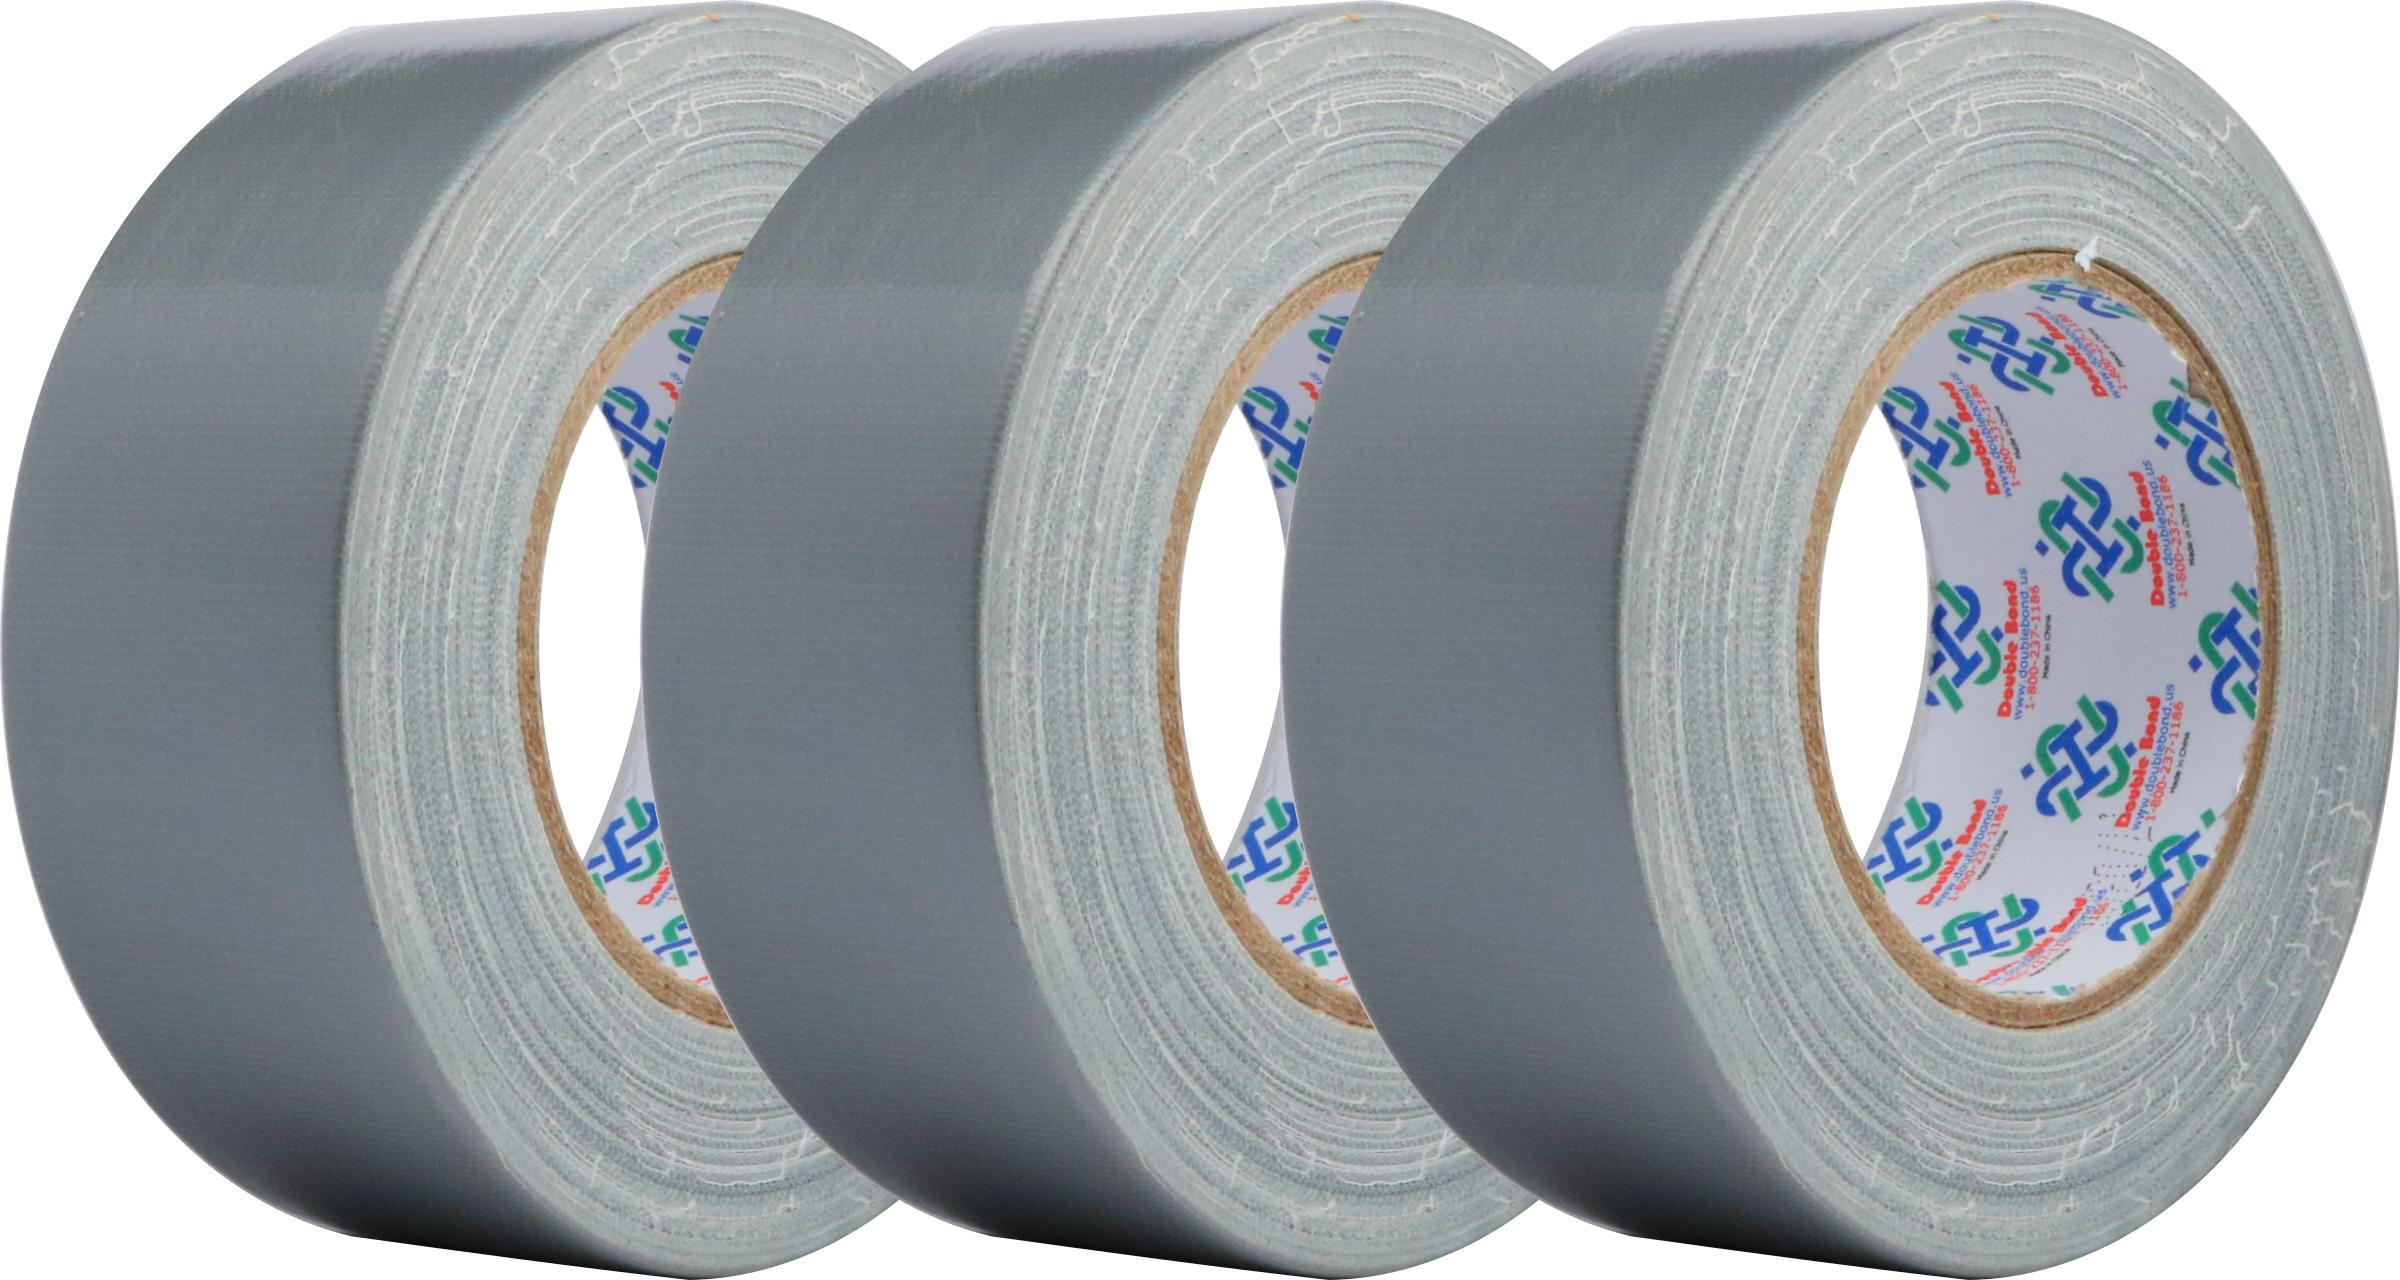 Double Bond Real Thick (11Mil) and Strong Duct Tape 6353, Silver, 48mm x 32m (1.88 Inch x 35 Yards), 11mil Thick (Pack of 3)